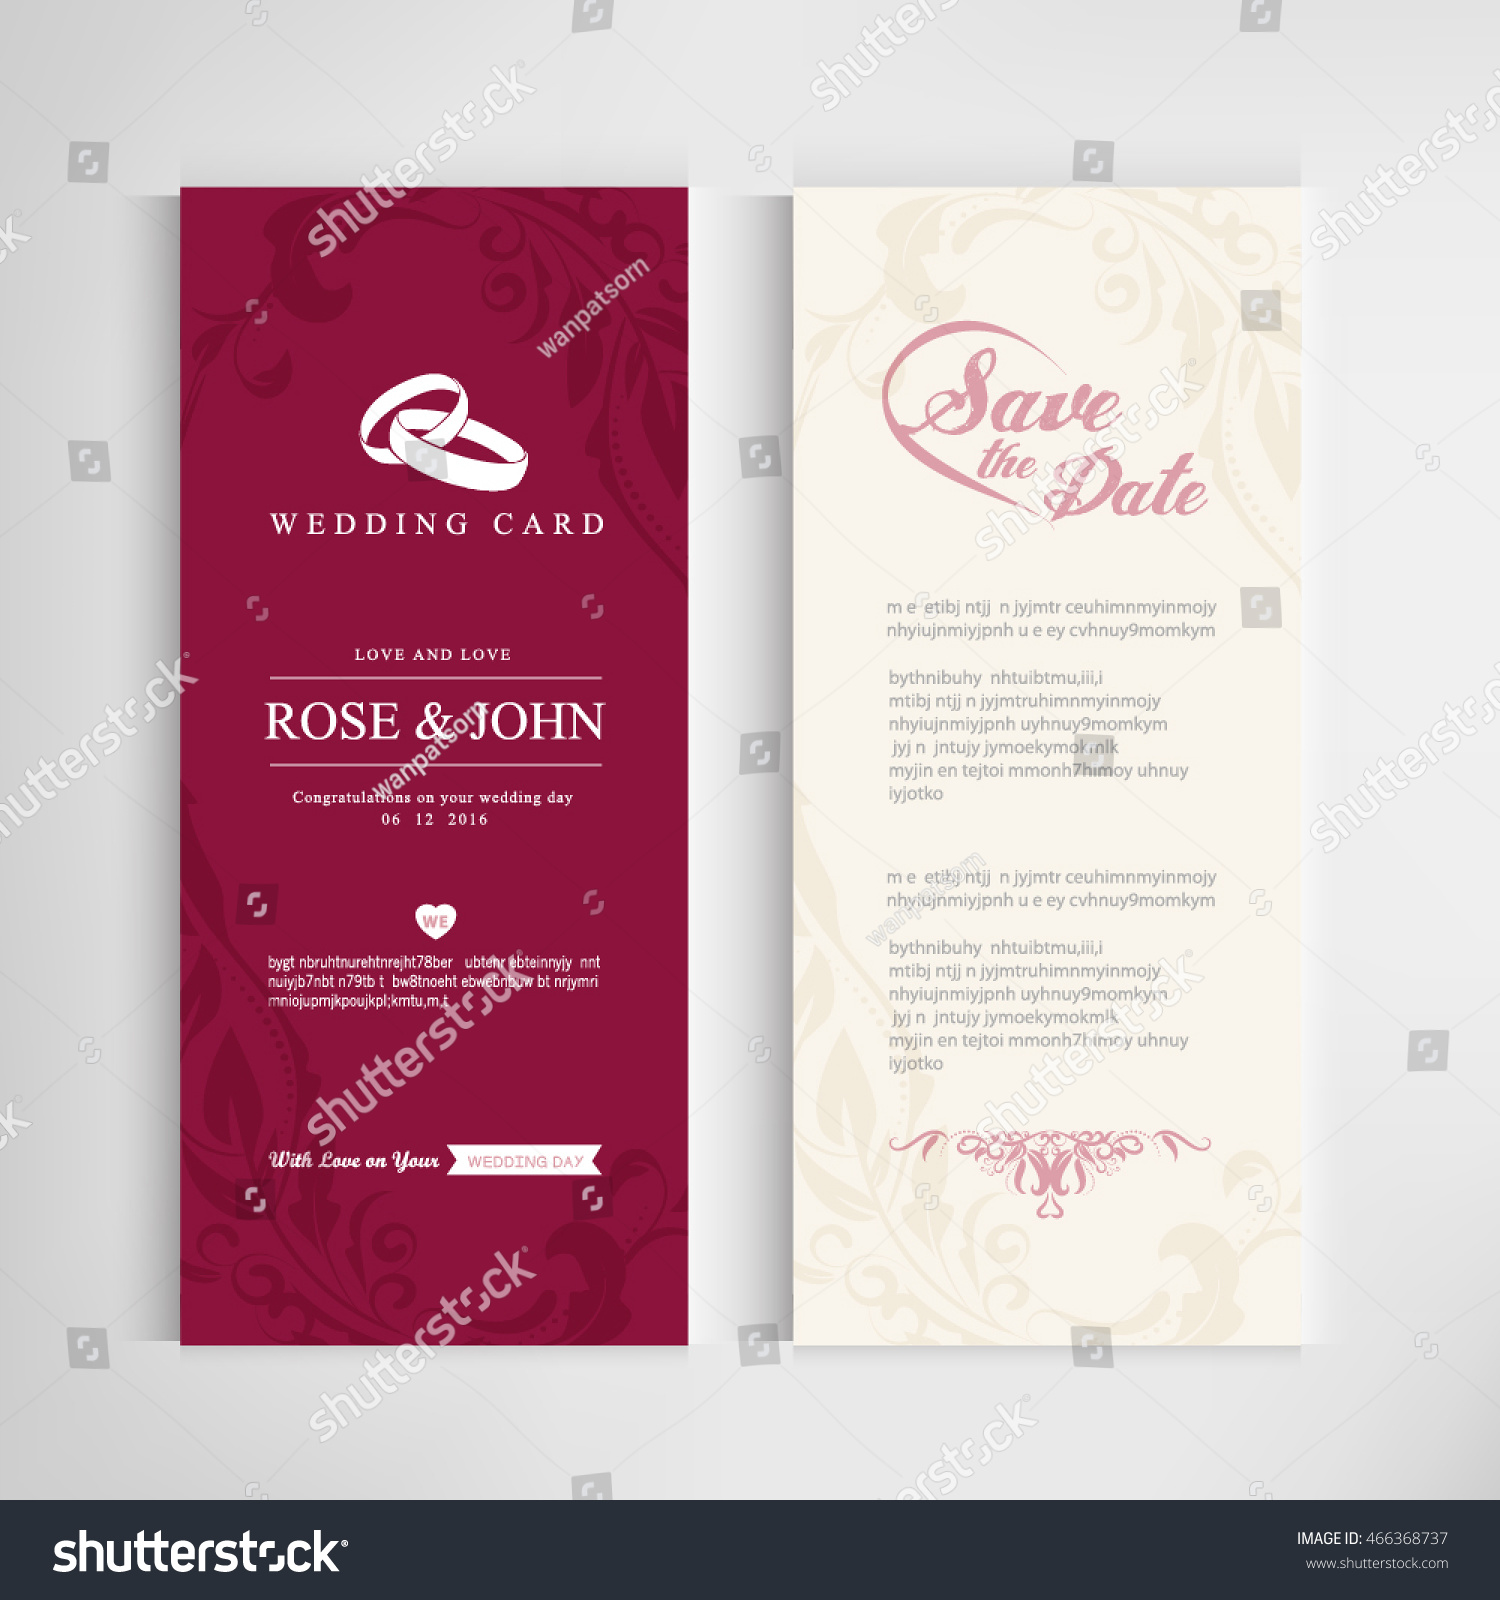 Vintage Wedding Card Invitations Templates Vector Stock Vector ...